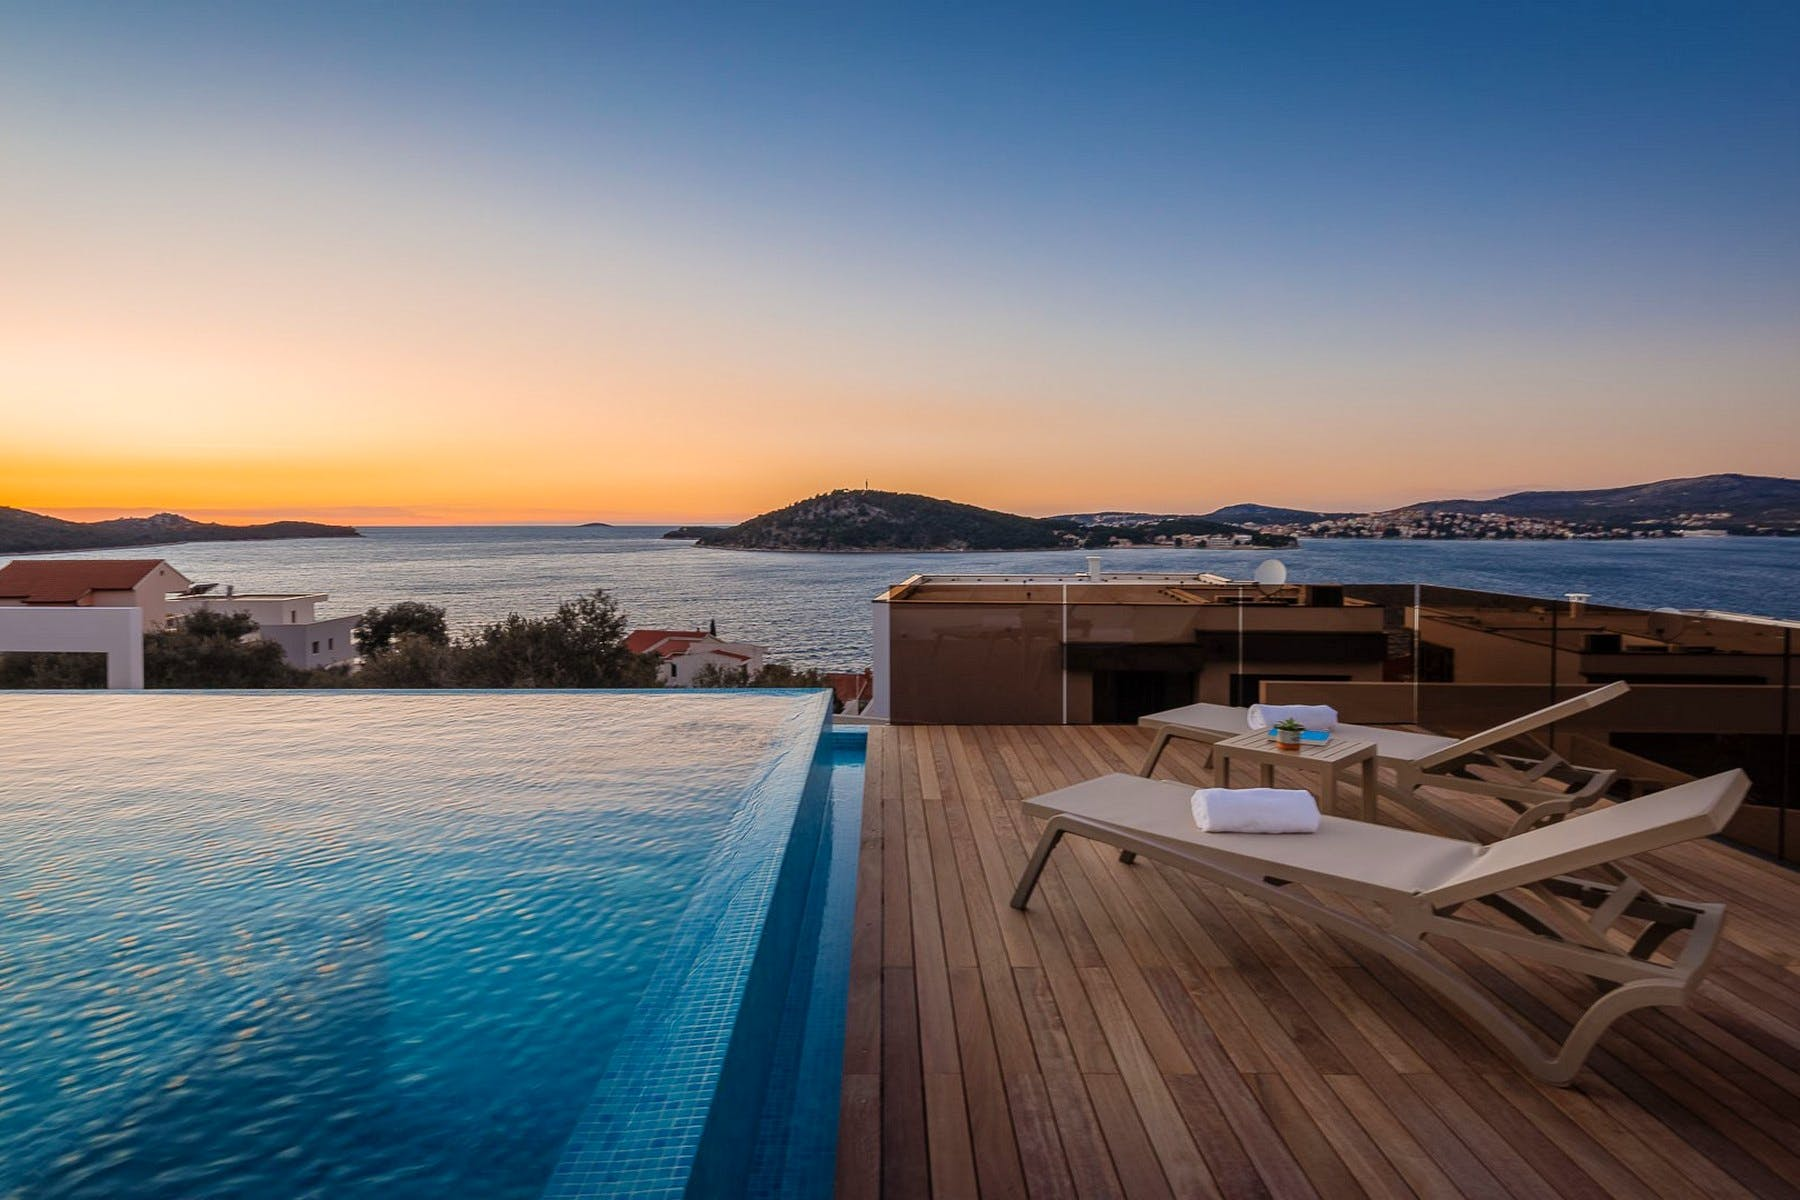 Night ambiance and sunset view from the terrace with swimming pool